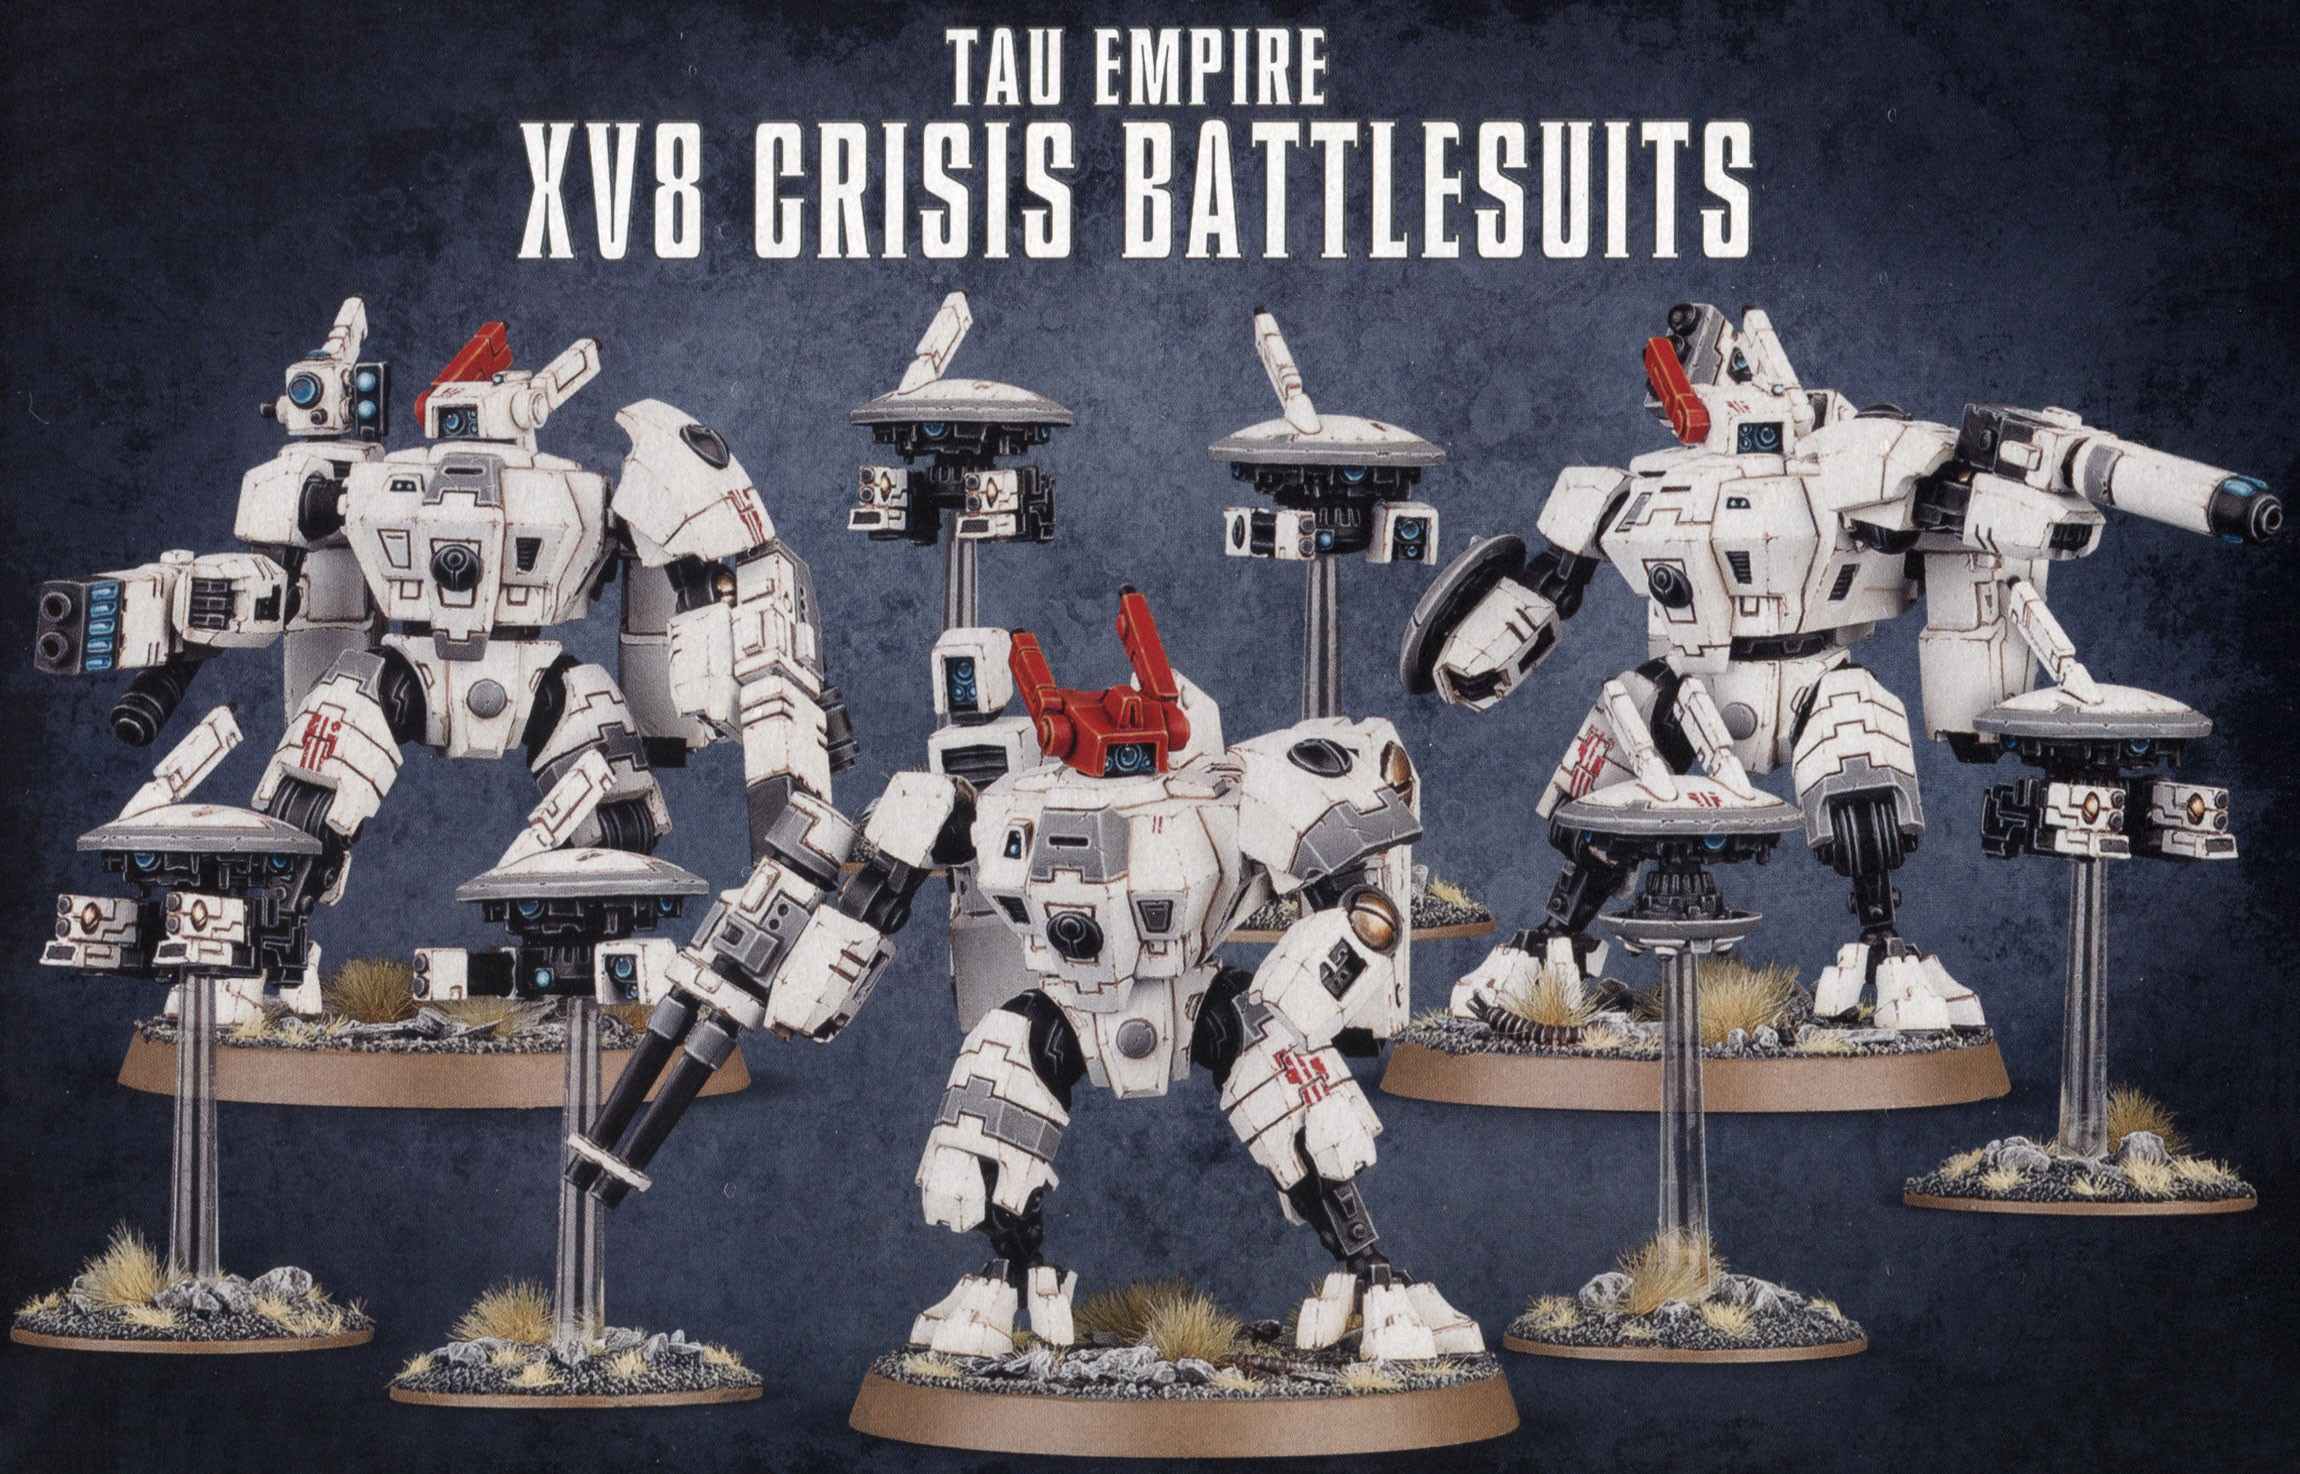 Tau Empire XV8 Crisis Battlesuit Team